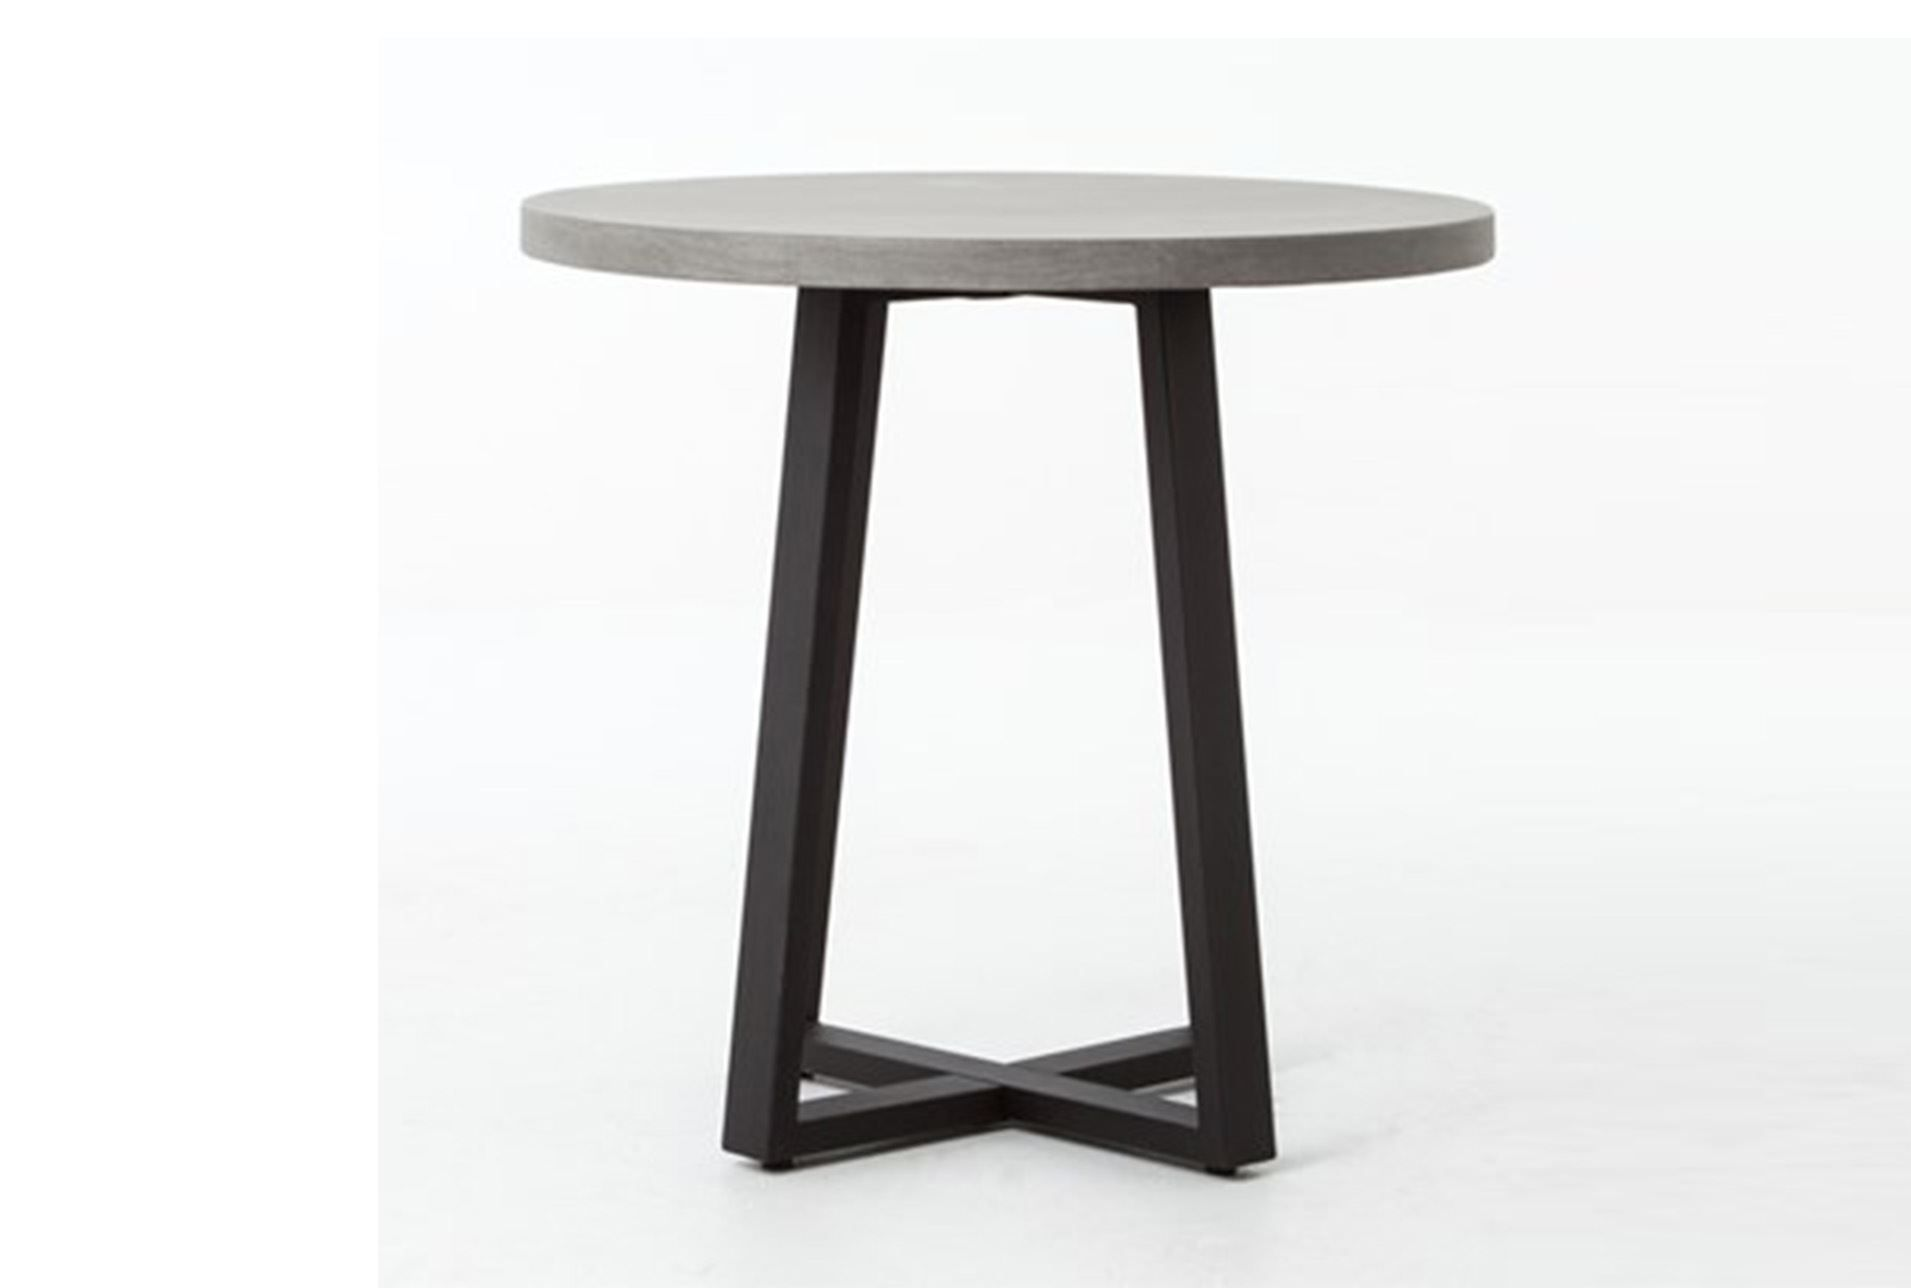 Parson 32 Inch Round Dining Table Round Dining Table Round